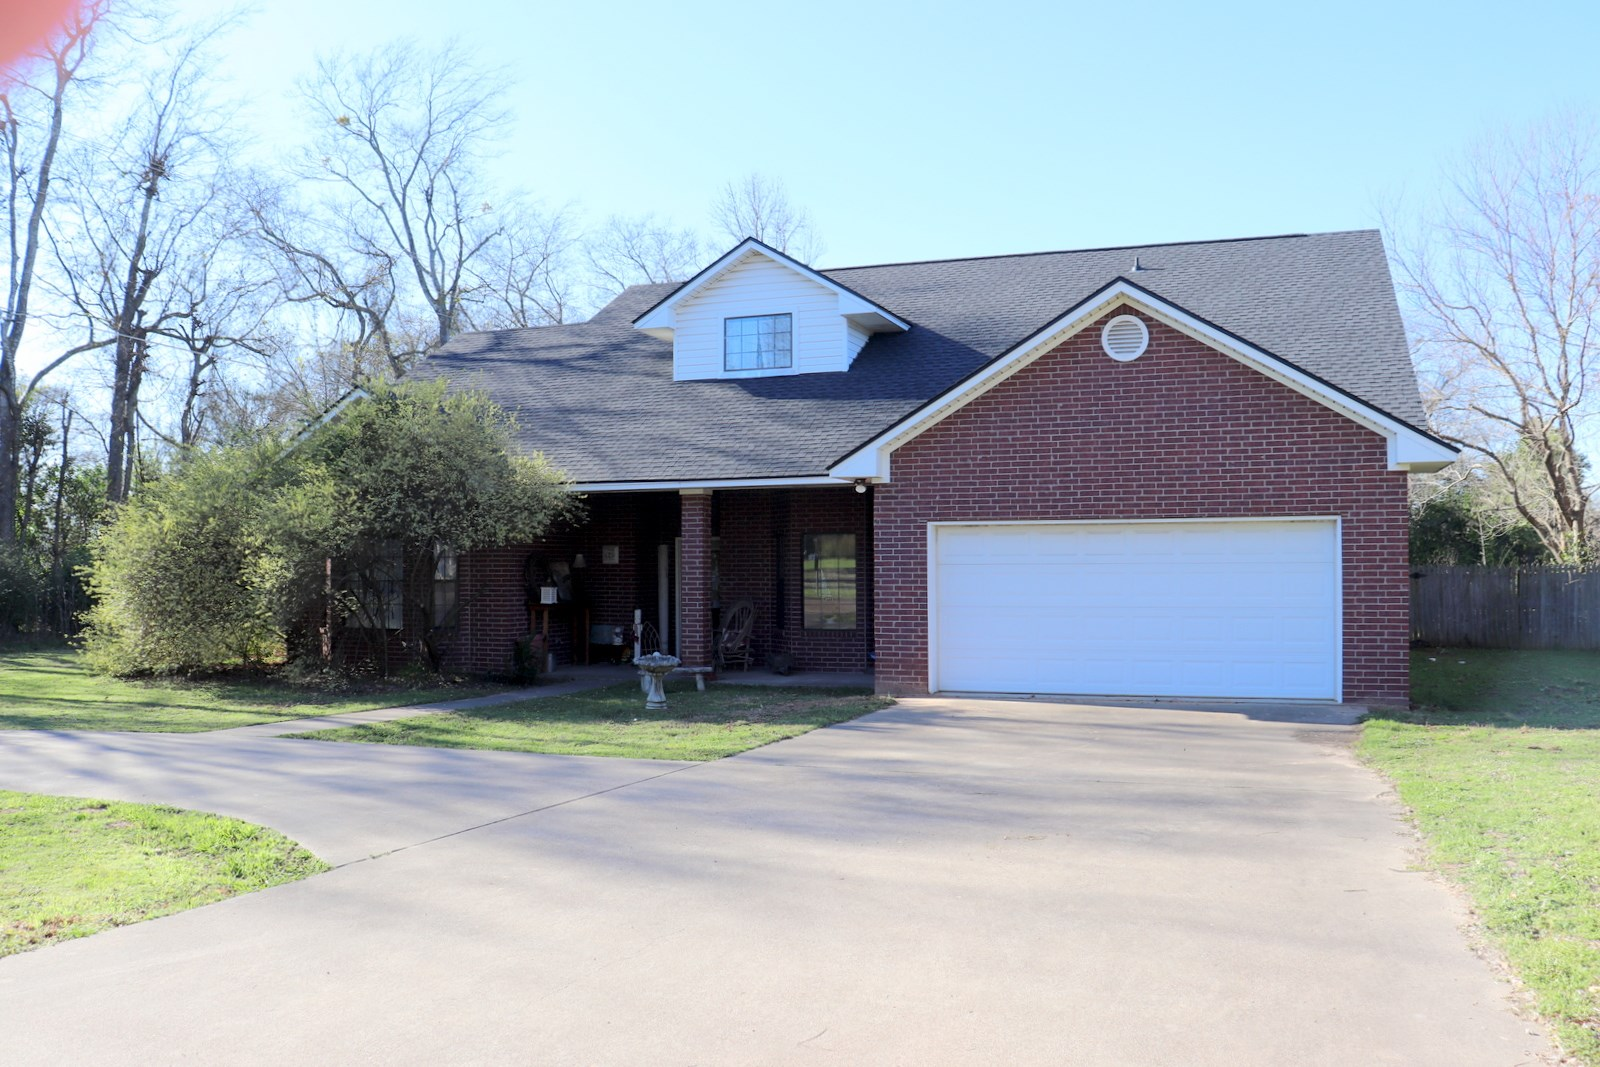 LARGE BRICK HOME WOOD COUNTY - QUITMAN, TEXAS FOR SALE